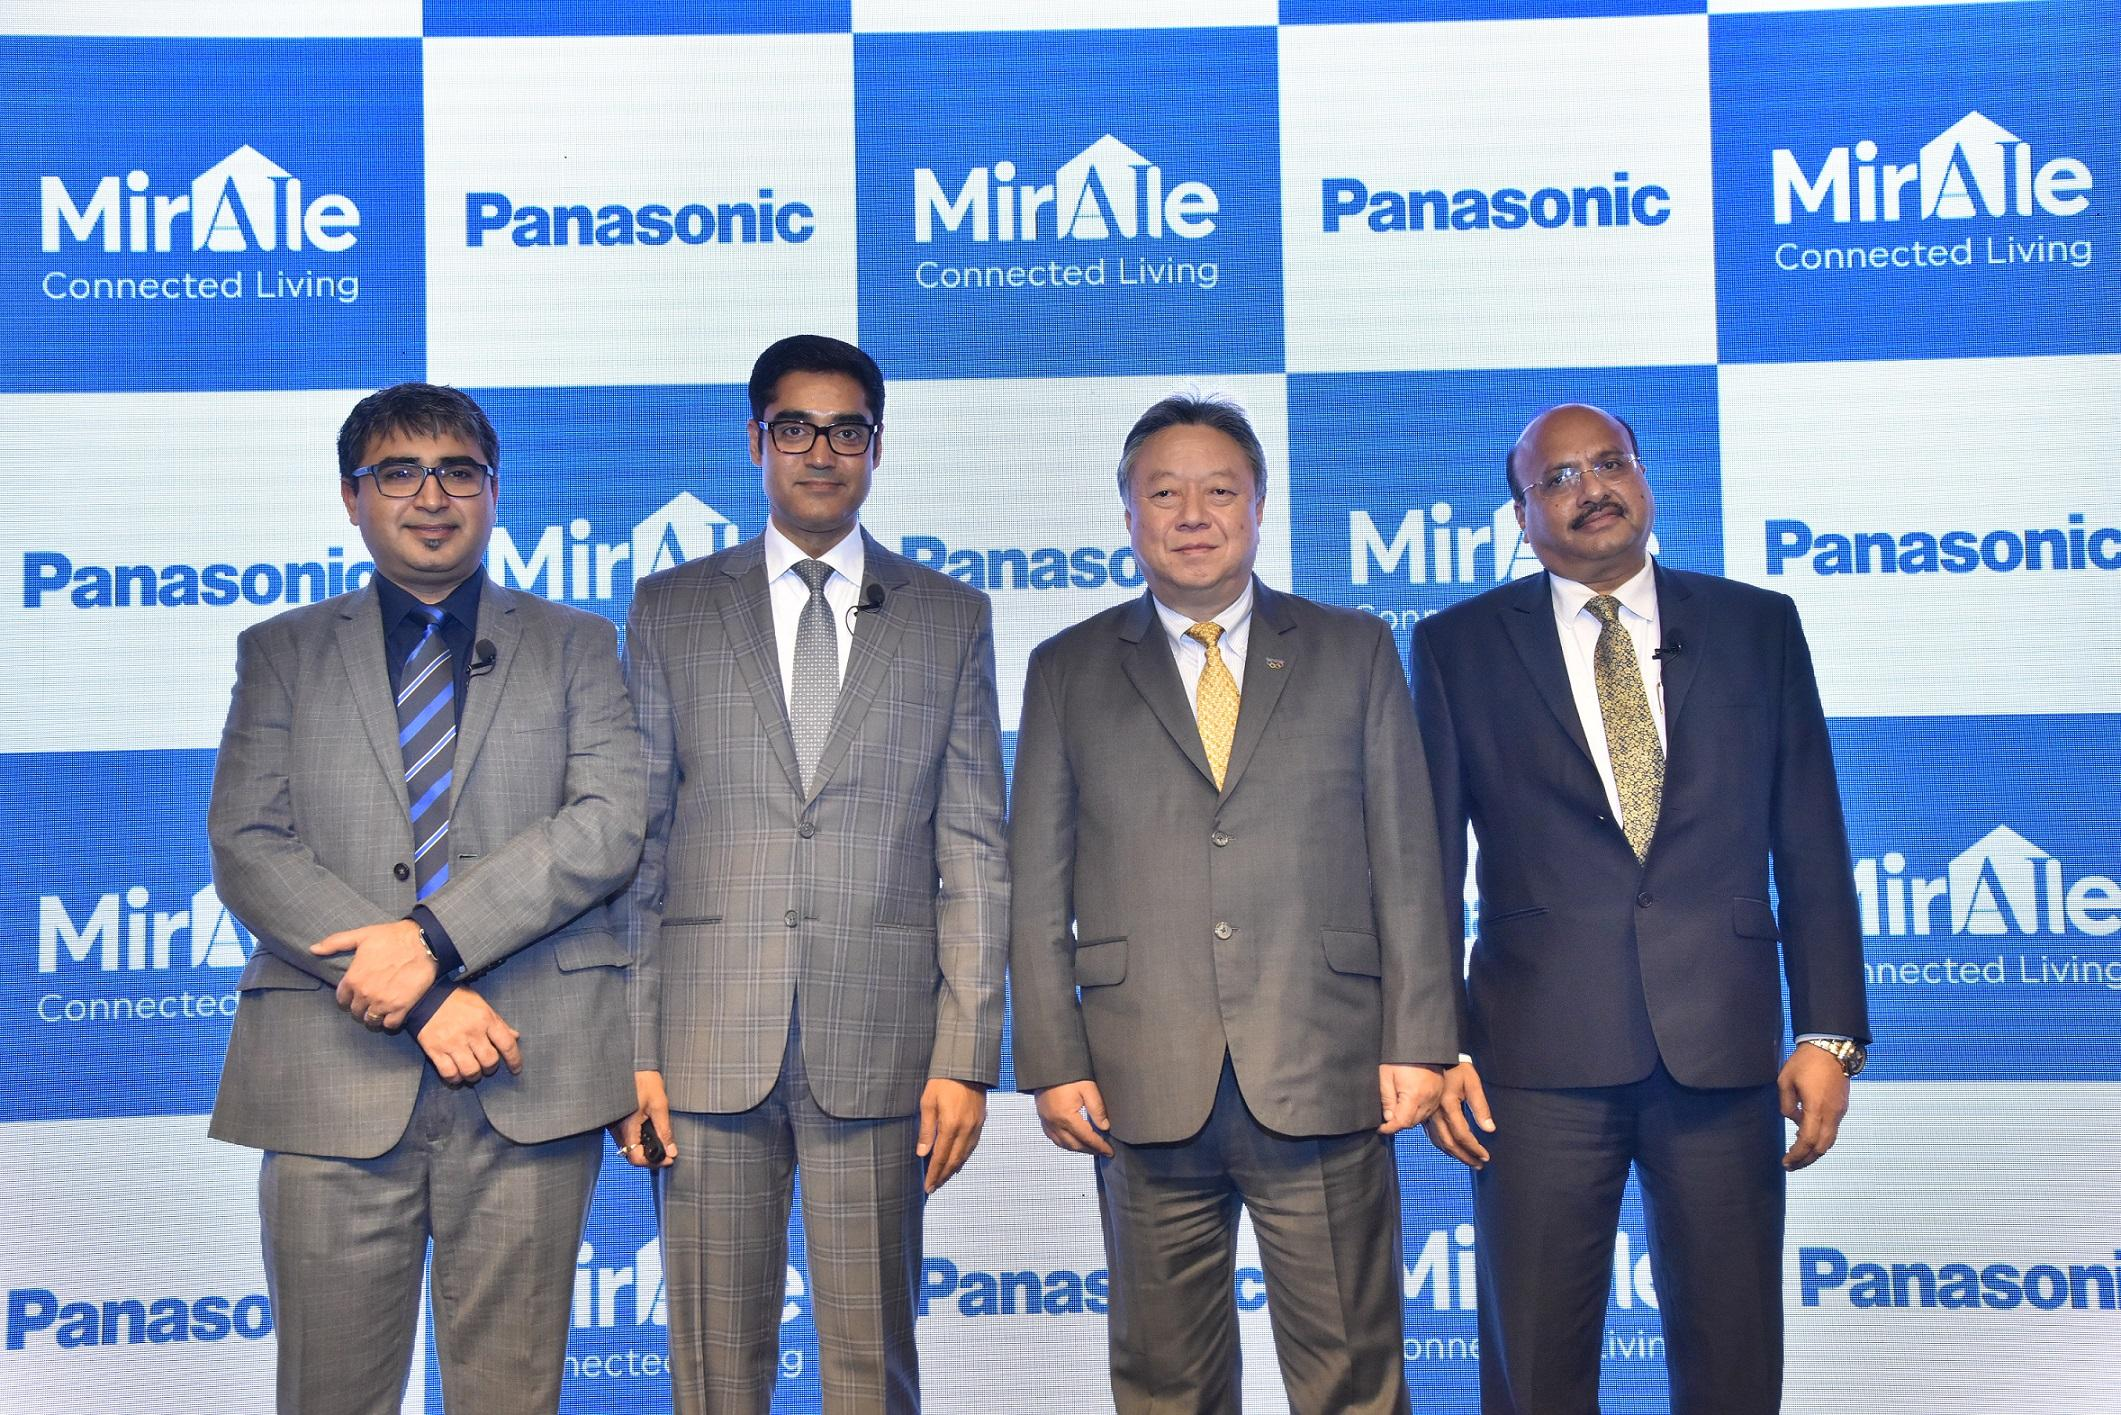 Photo: L-R Manish Misra (Chief Innovation Officer at Panasonic India), Manish Sharma, President & CEO Panasonic India, Daizo Ito, Managing Executive Officer and Regional Head ISAMEA, Dinesh Aggarwal, Joint Managing Director, Panasonic Life Solutions, at the launch event of Miraie